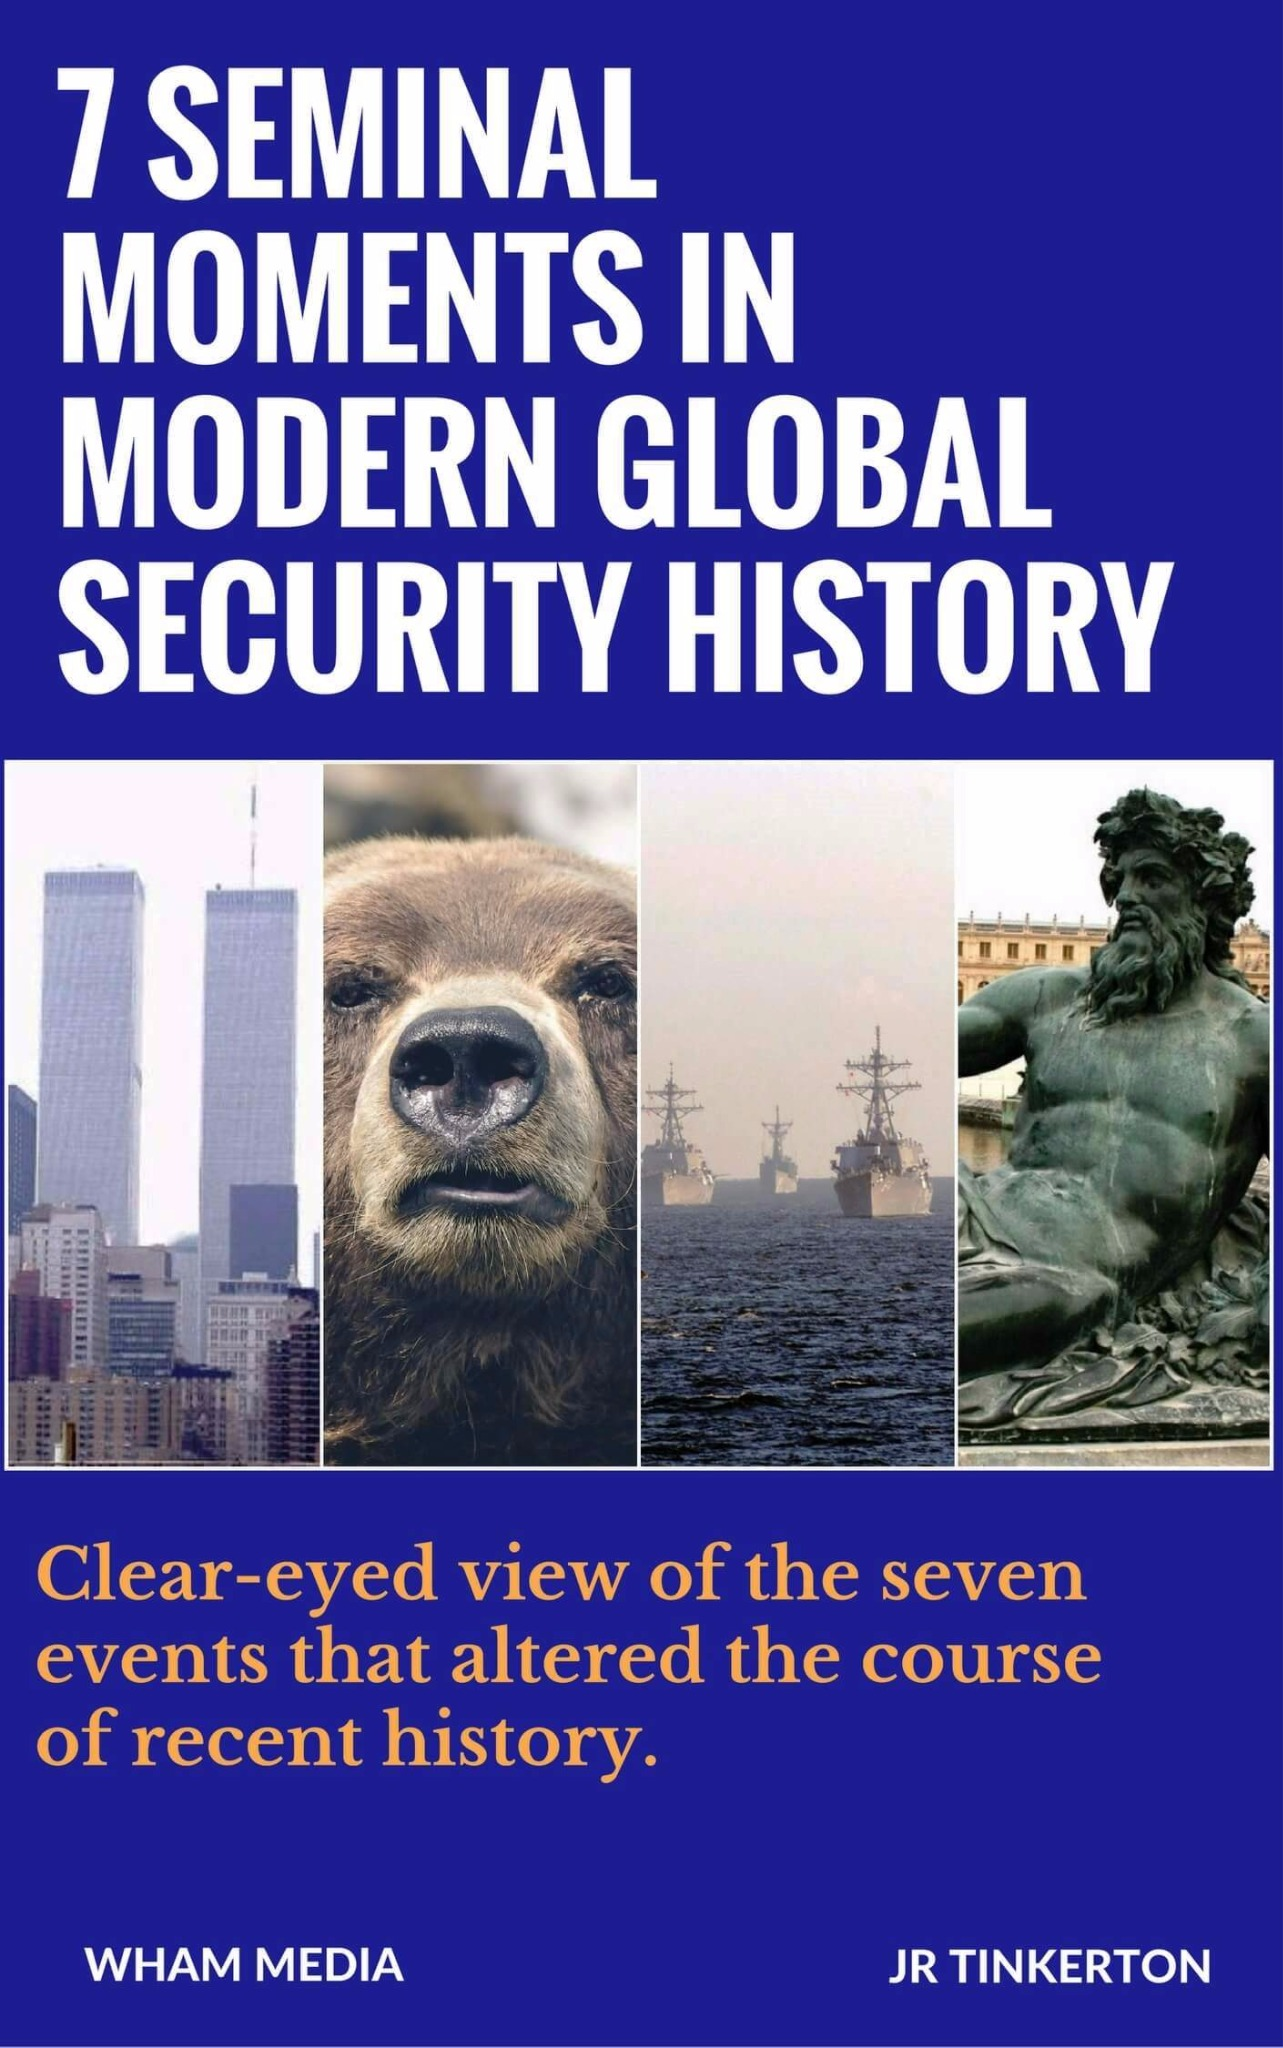 7 Seminal Moments in Modern Global Security History